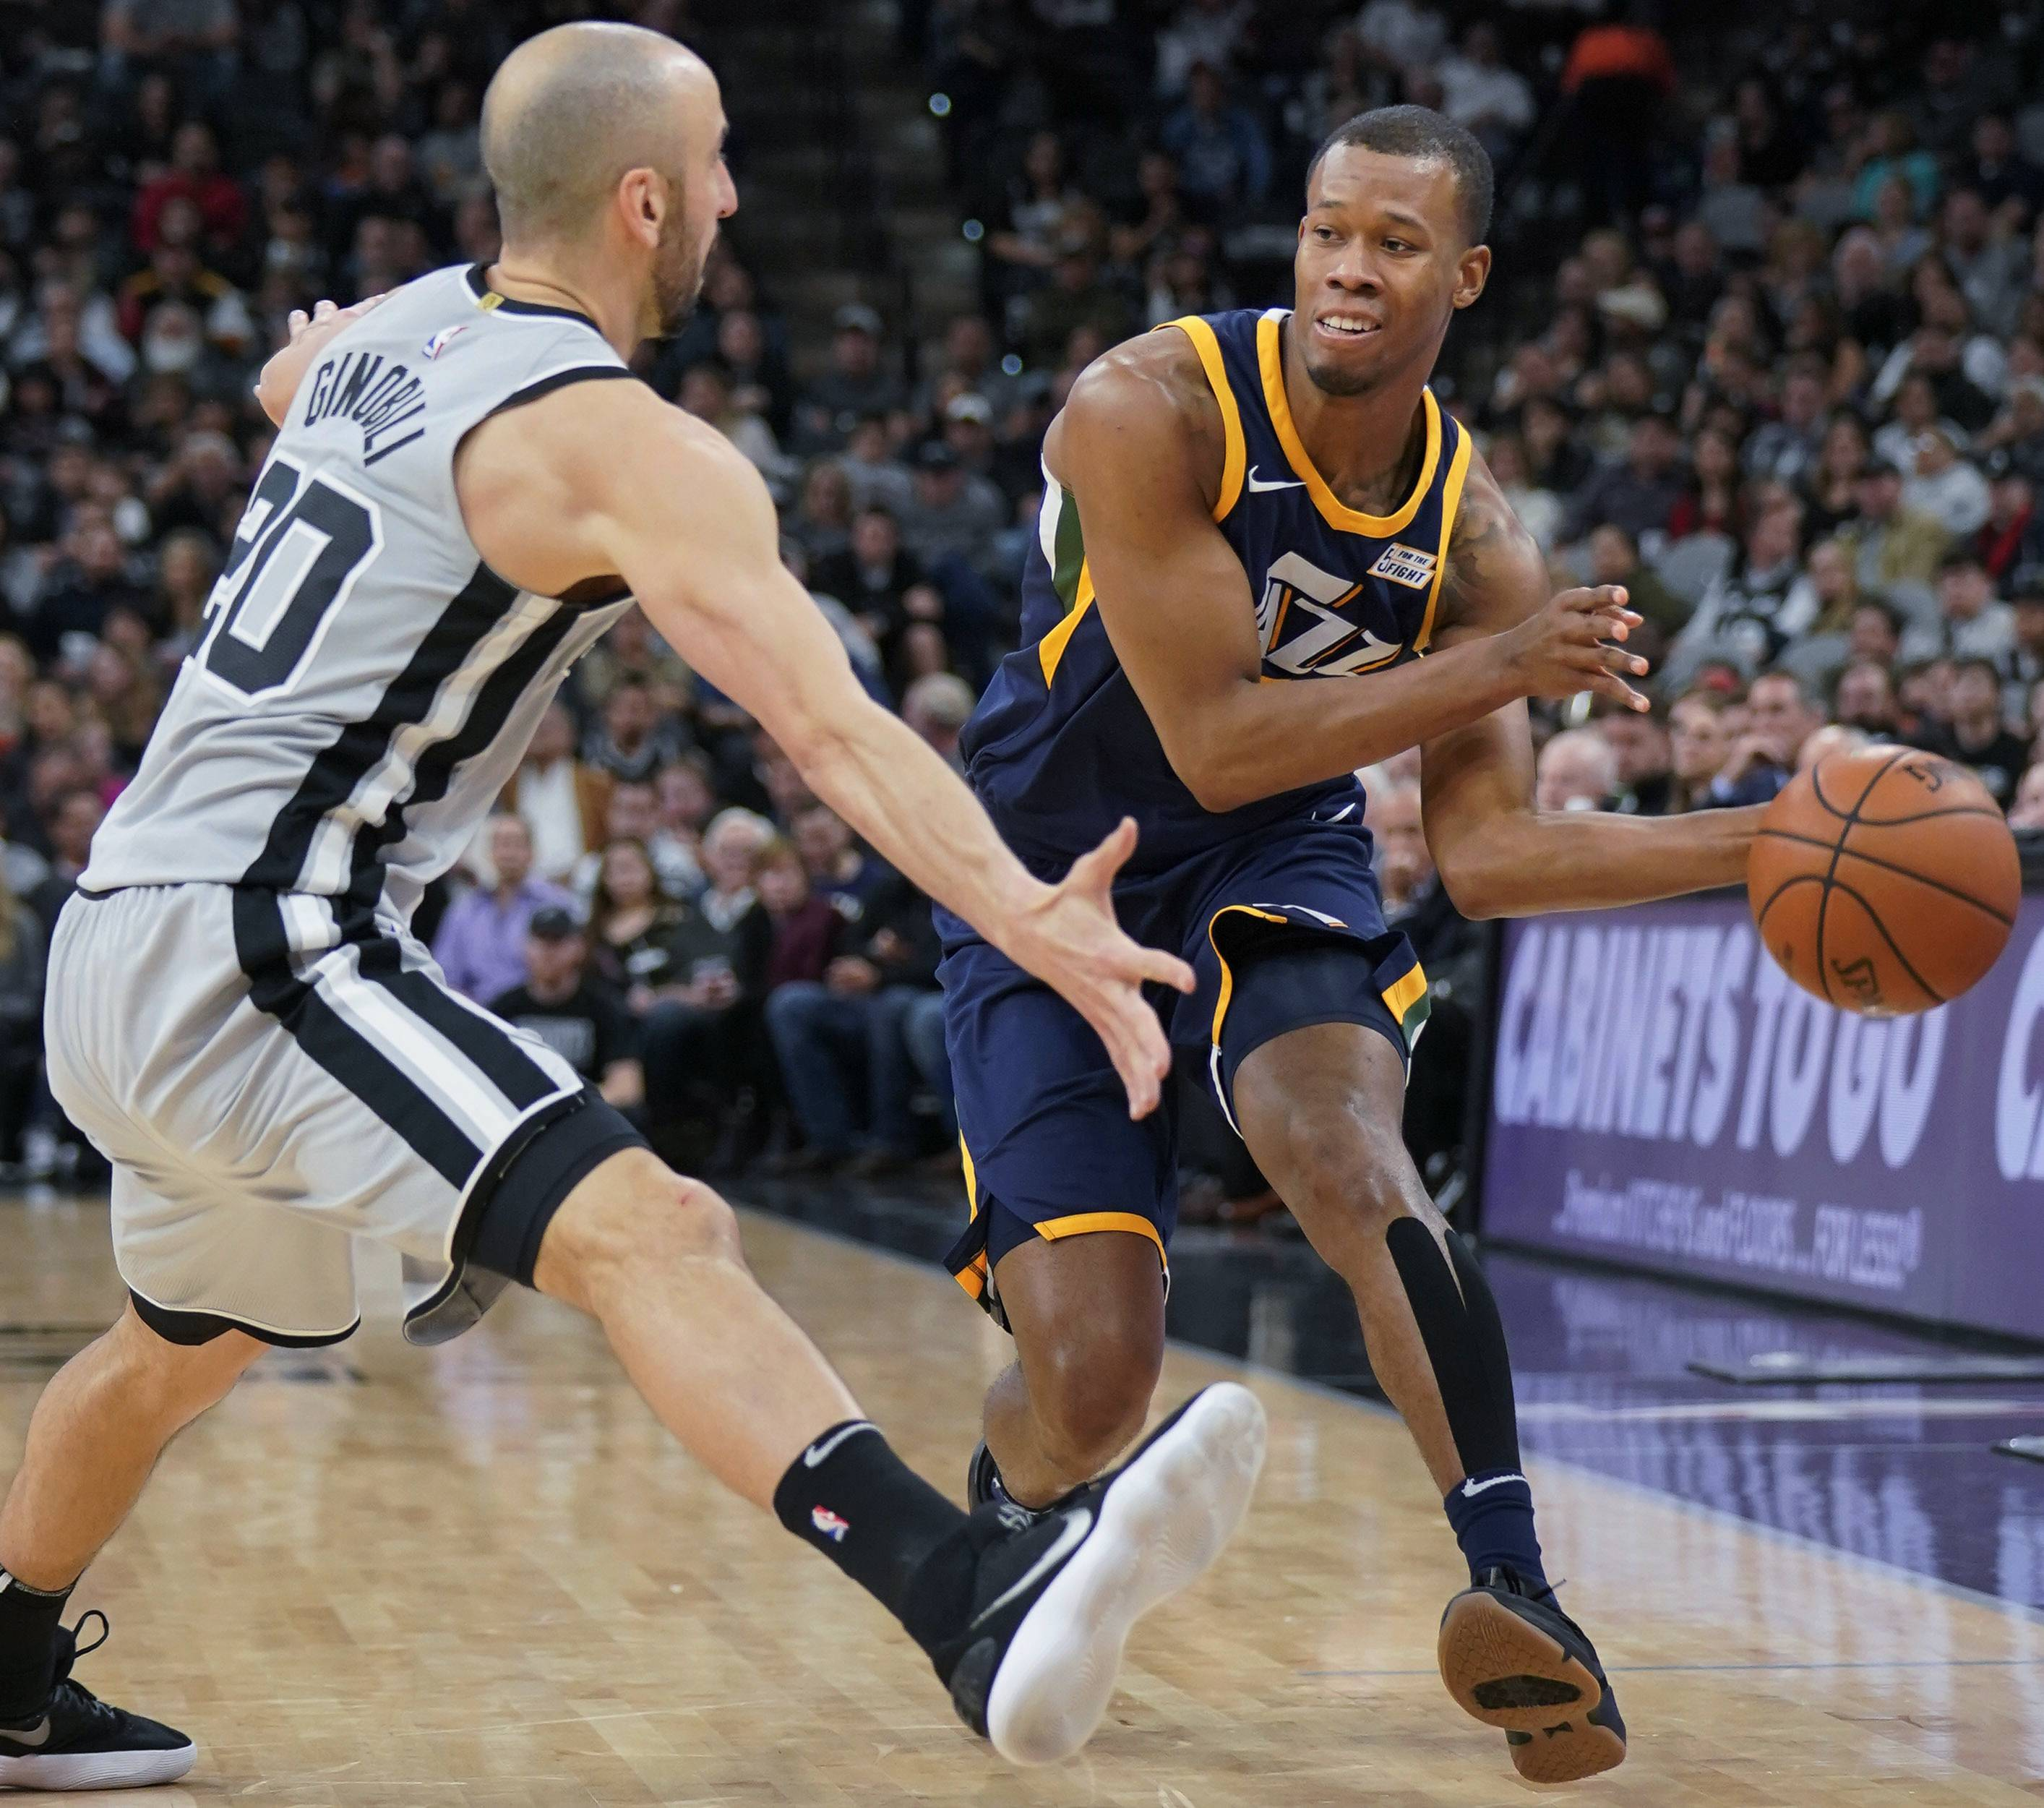 A popular goal as the NBA trade deadline approaches is unloading bad contracts. Can the Bulls use this to help their rebuilding project somehow? The deadline hits on Thursday afternoon. The Jazz's Rodney Hood has been mentioned frequently in rumors. The Salt Lake Tribune suggested the Bulls are one of the teams interested,